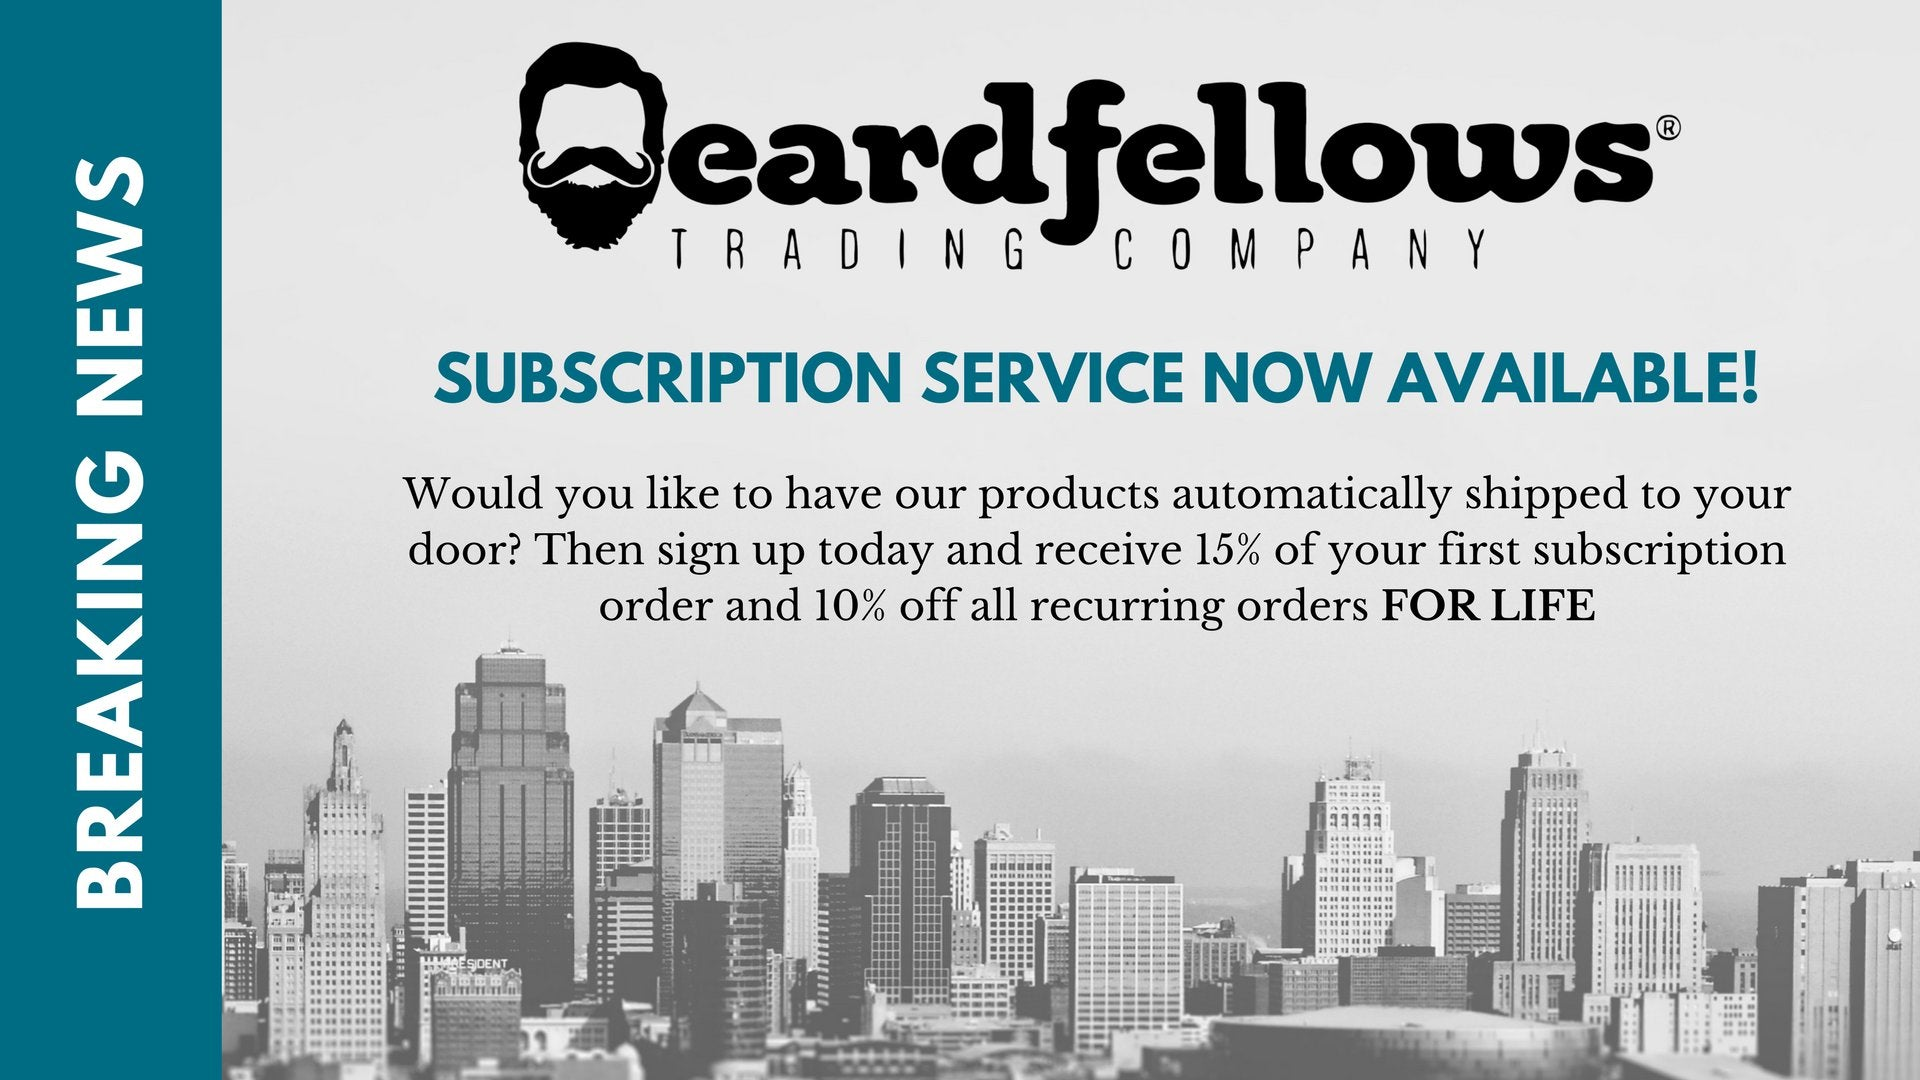 Beardfellows Trading Company Subscription Service